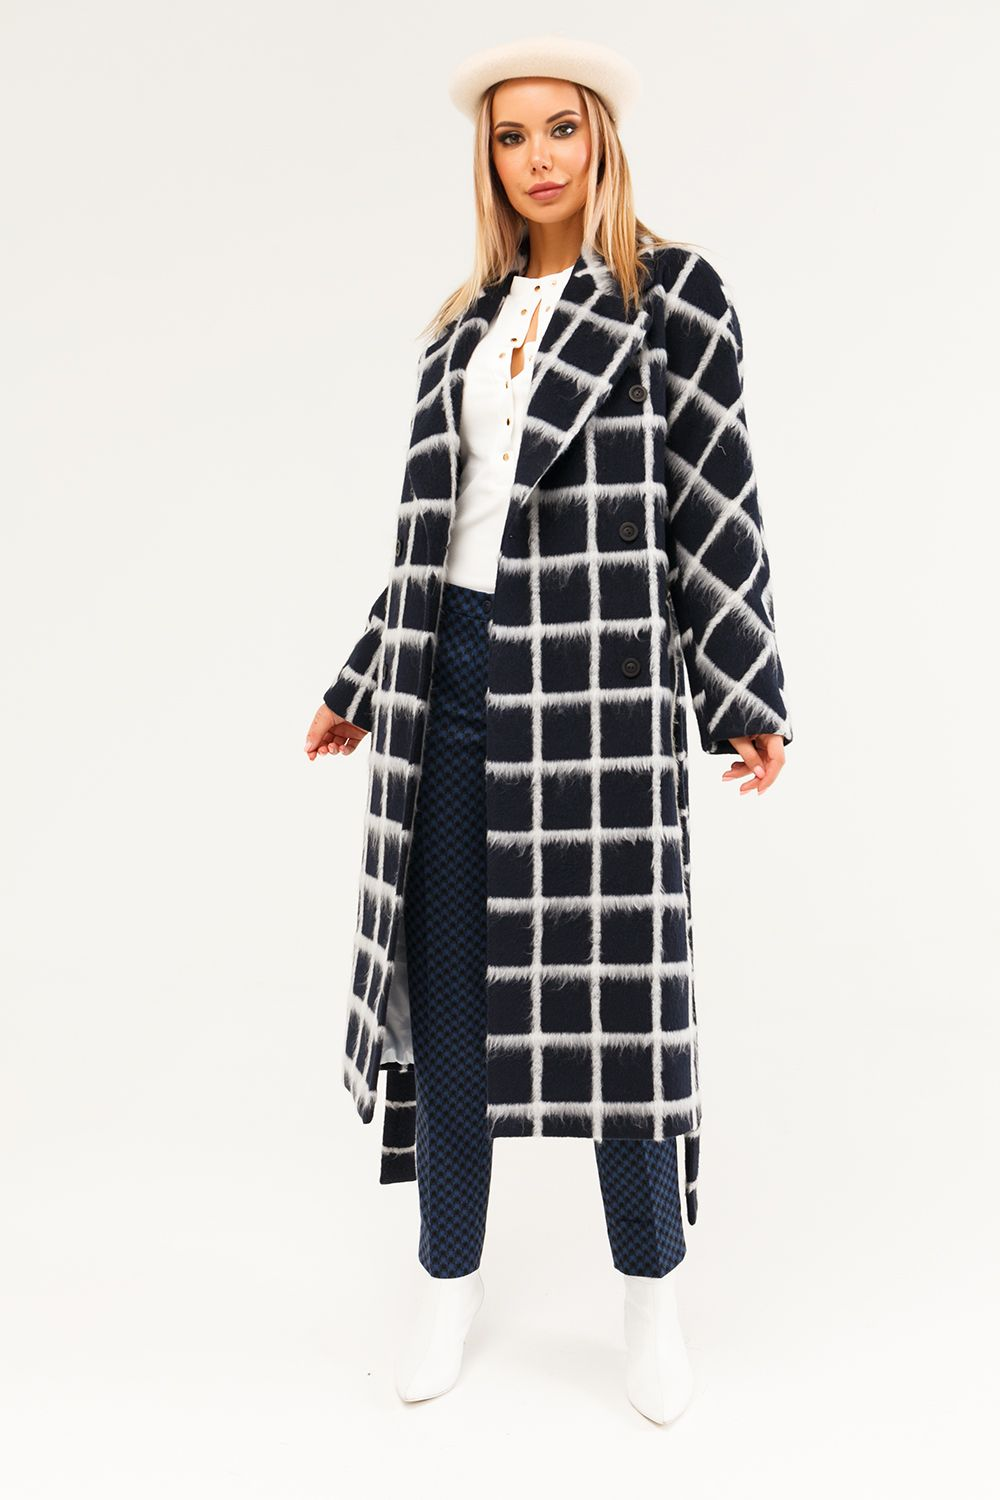 Checked wool and cashmere coat - Outerwear - LN Family - SELFIE STORE BARCELONA S.C.P.